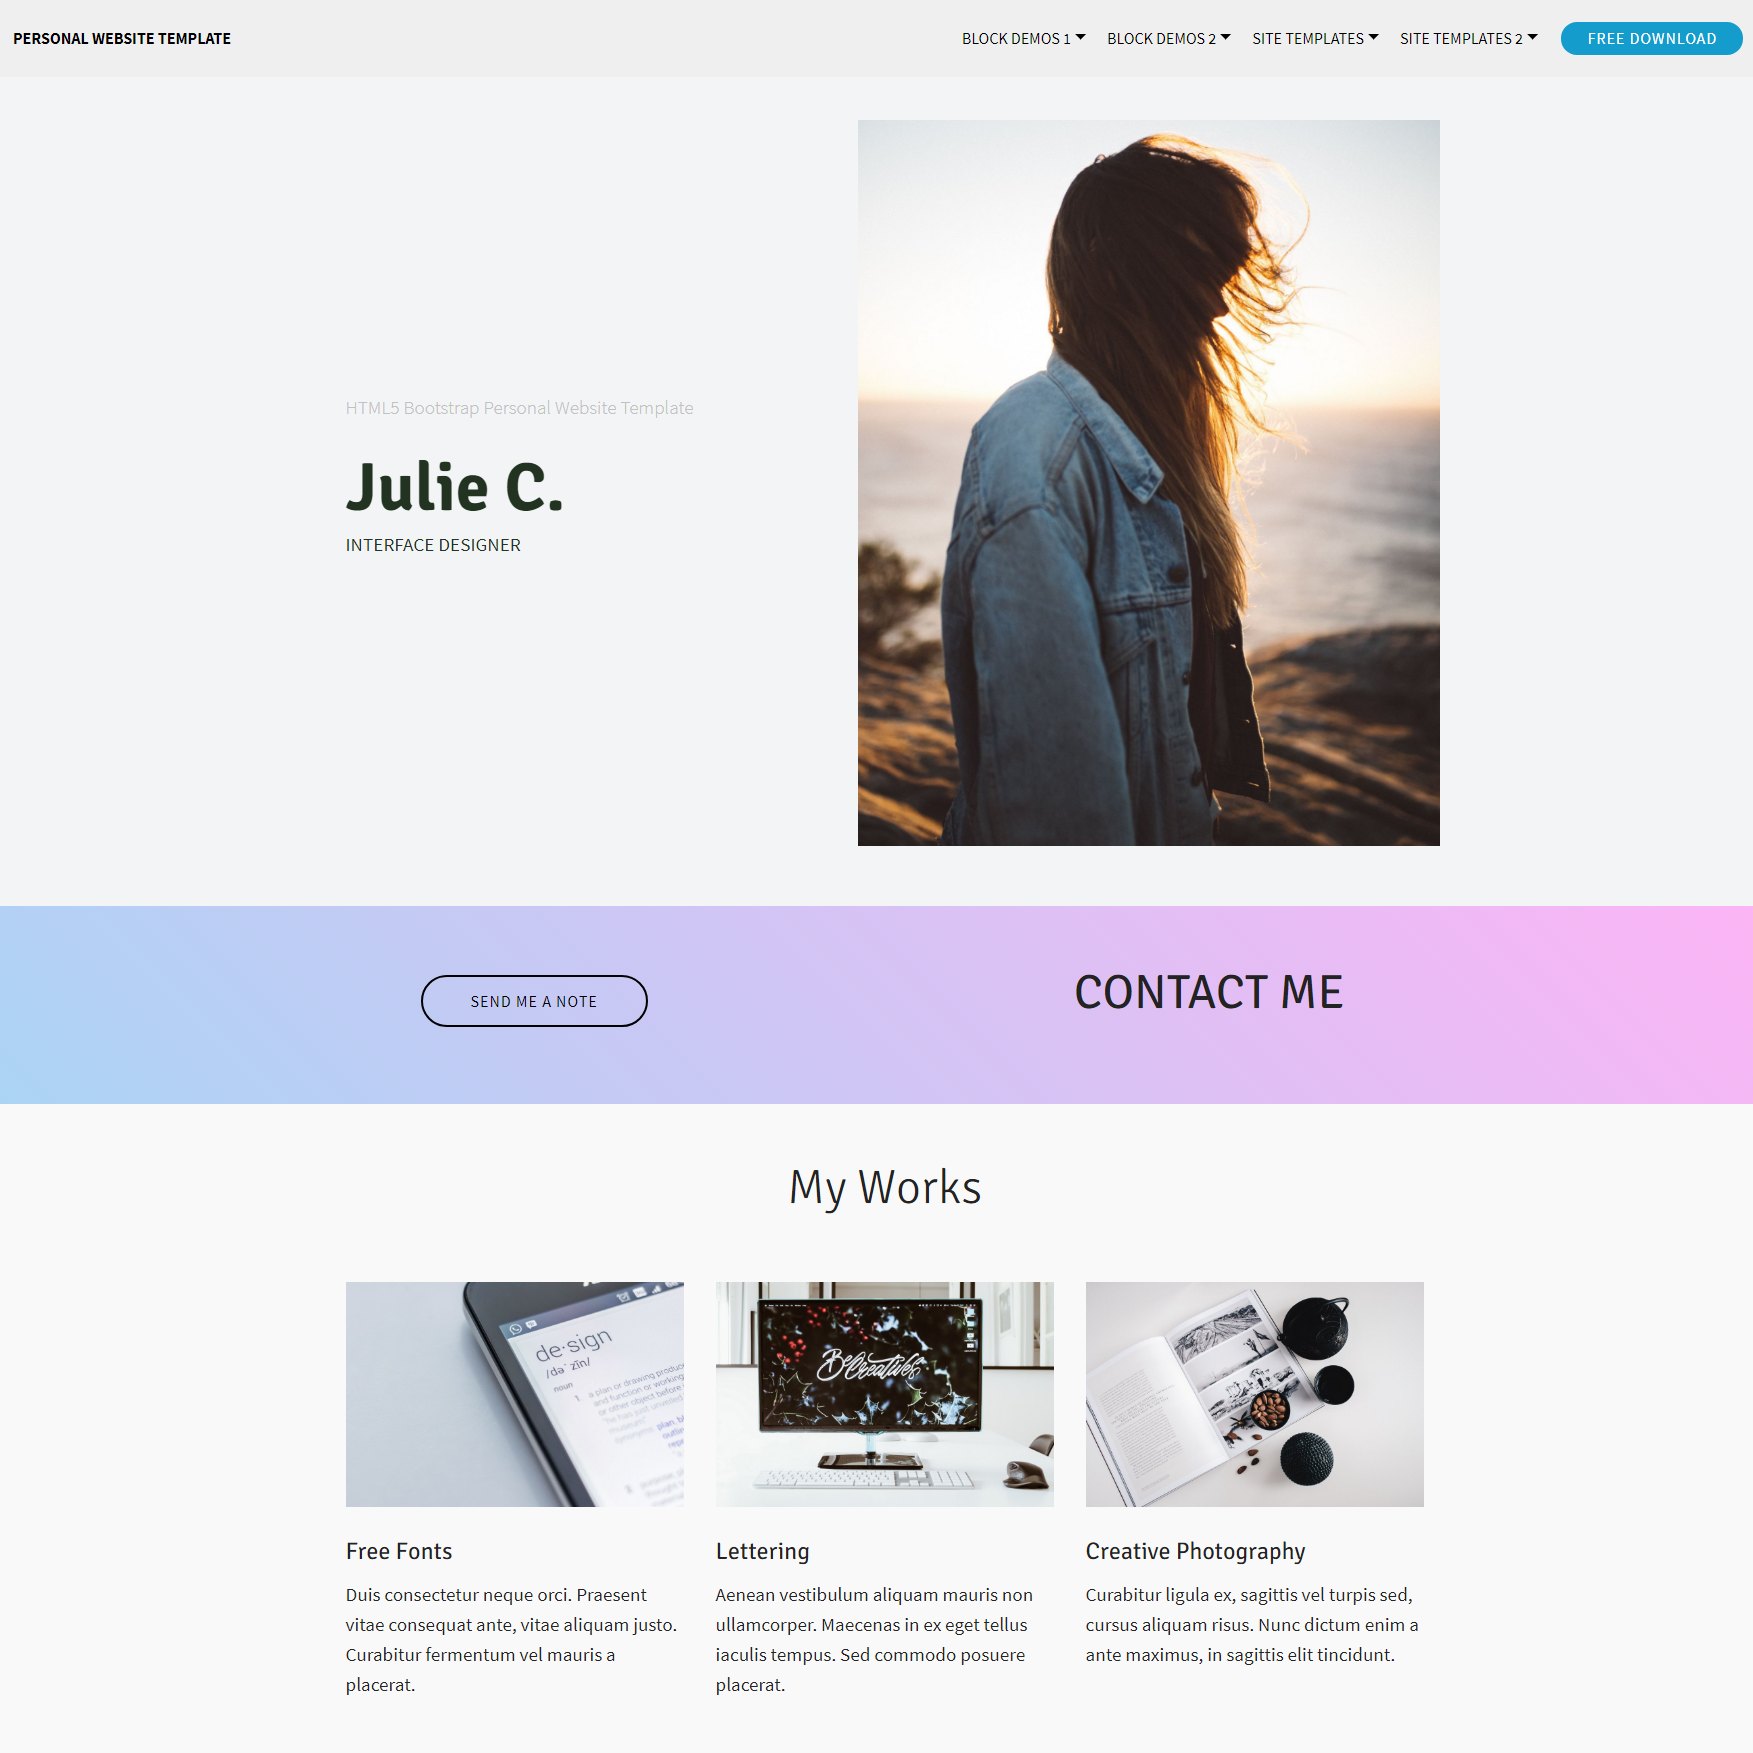 Beautiful Free Bootstrap Templates - Free responsive personal website templates